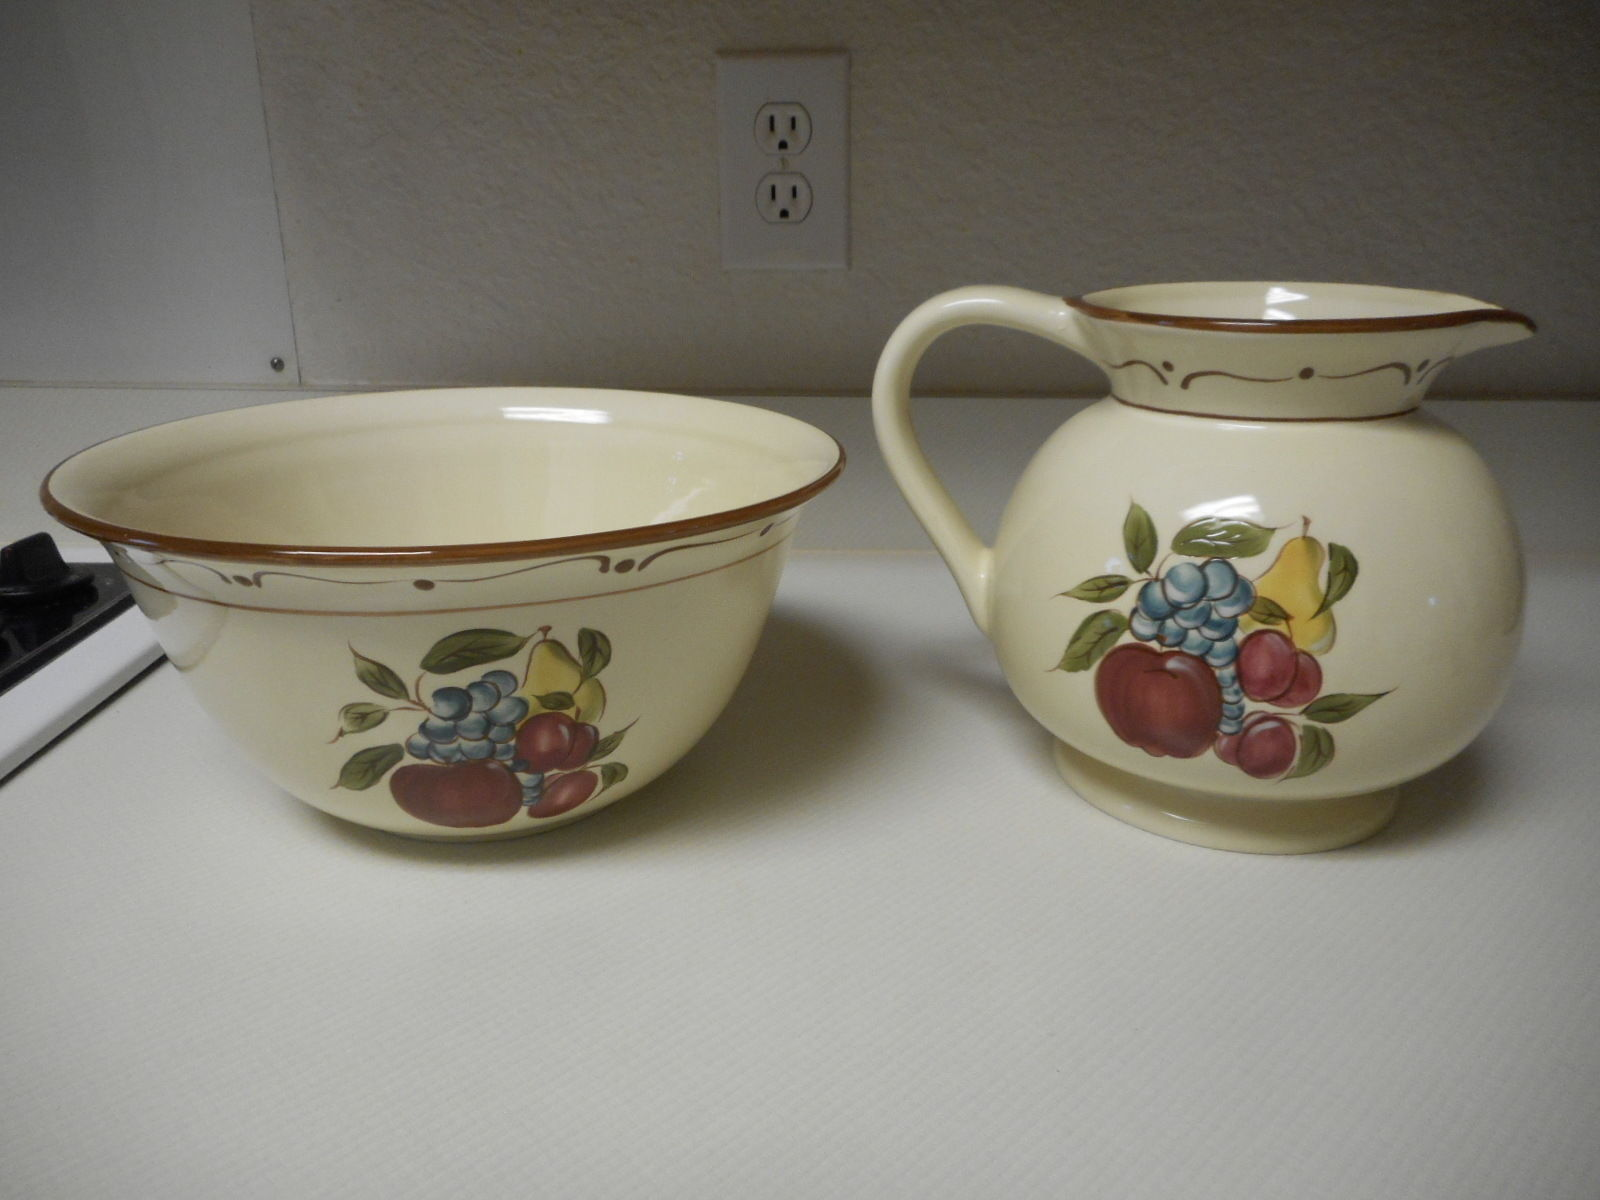 Around The Orchard Home Brand Stoneware Fruit Pattern Large Bowl & Pitcher